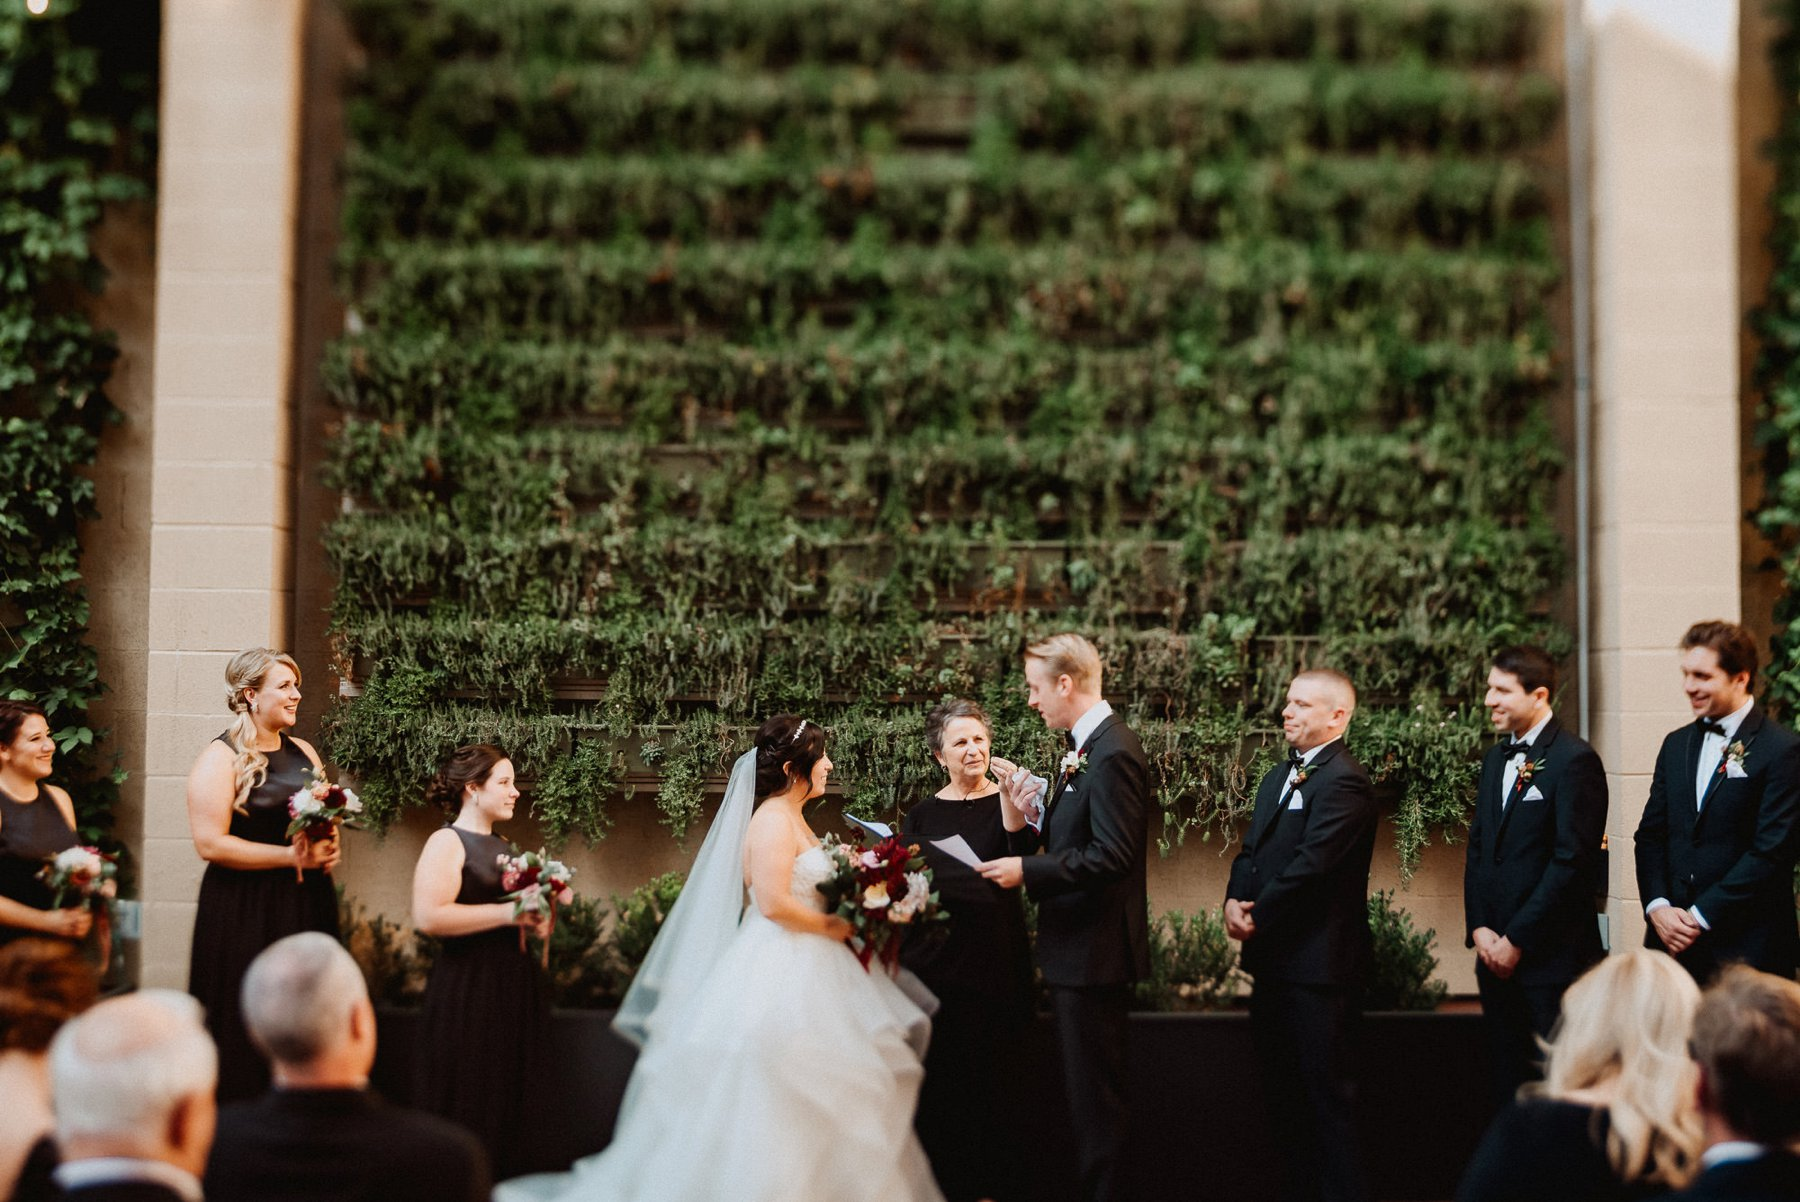 excelsior_lancaster_wedding_photographeer-044.jpg